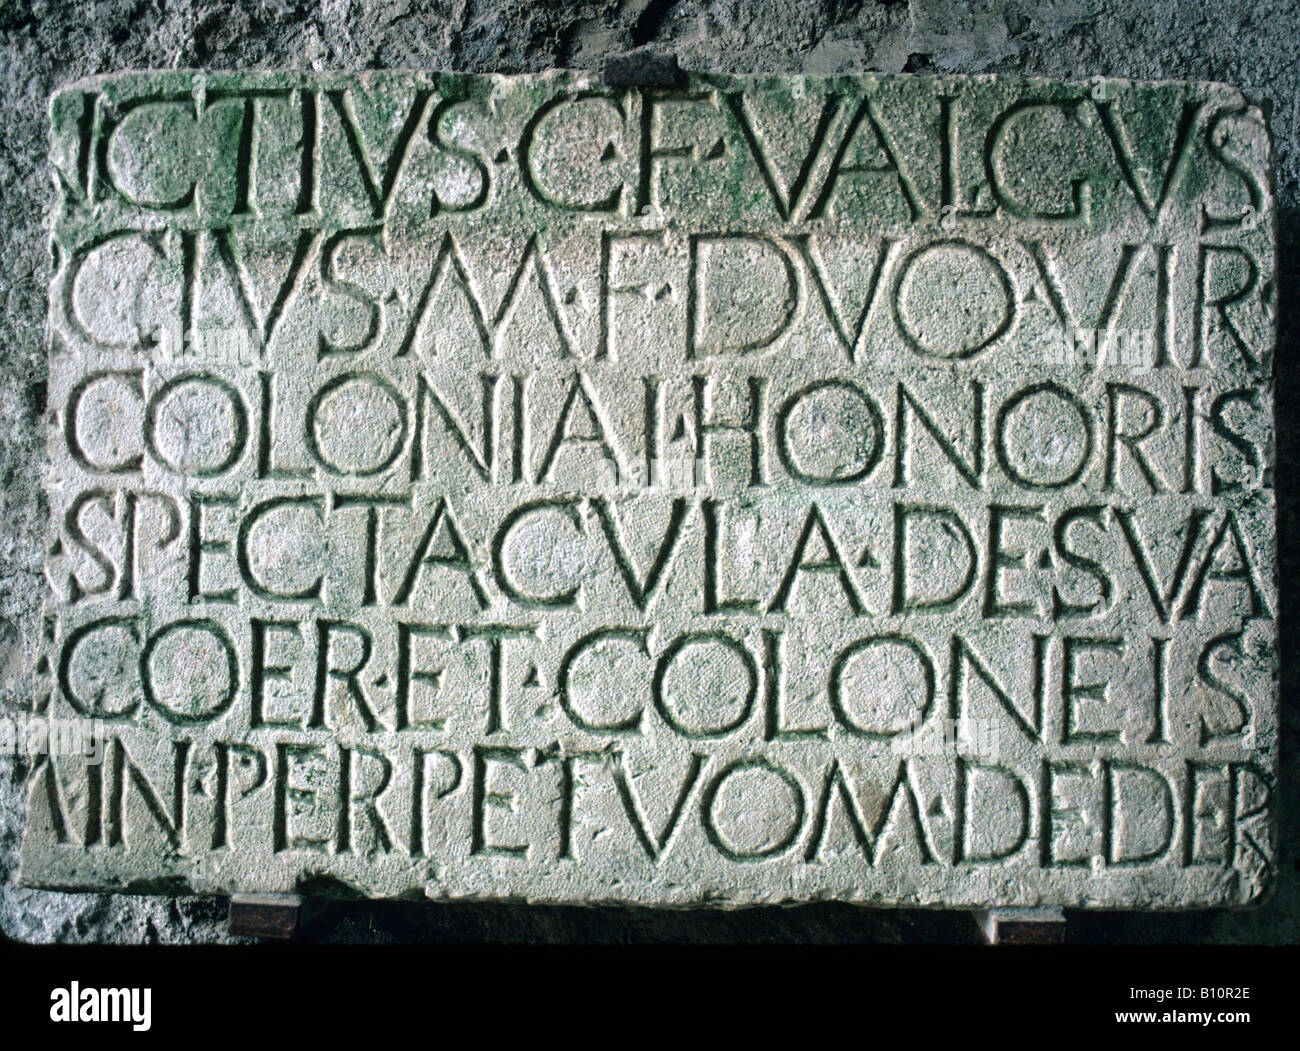 Pompeii Amphitheatre Latin inscription Foundation stone 80 BC Italy Copyright AAA Collection - Stock Image